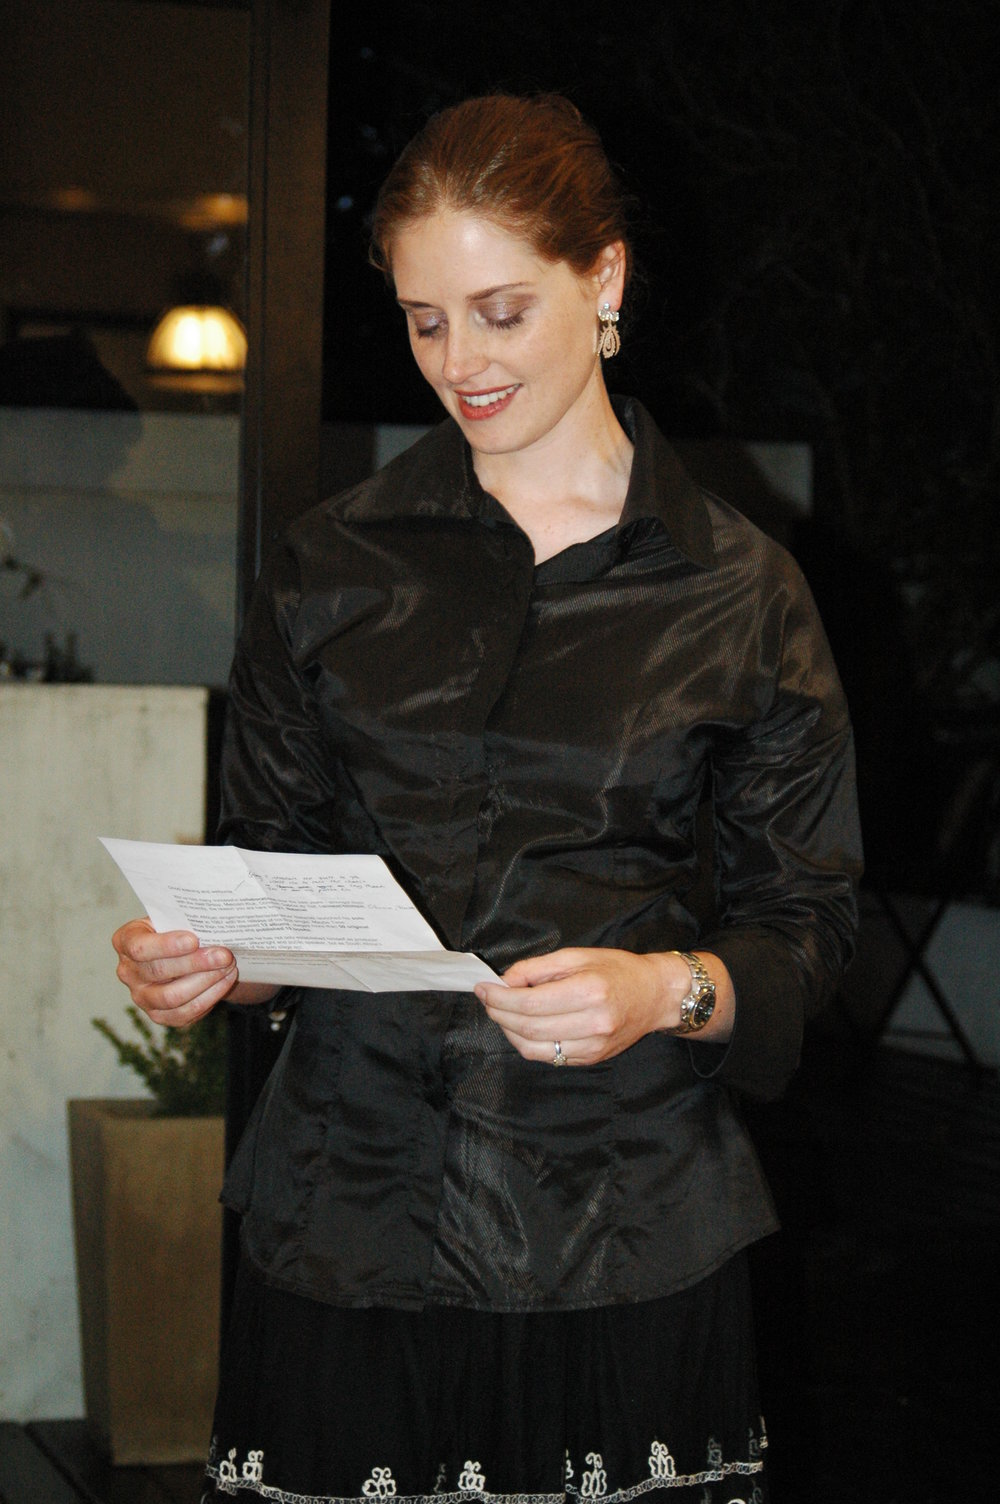 LAUNCH OF THE NATANIEL RANGE AT BOEZAART BAUERMEISTER DEC 2006